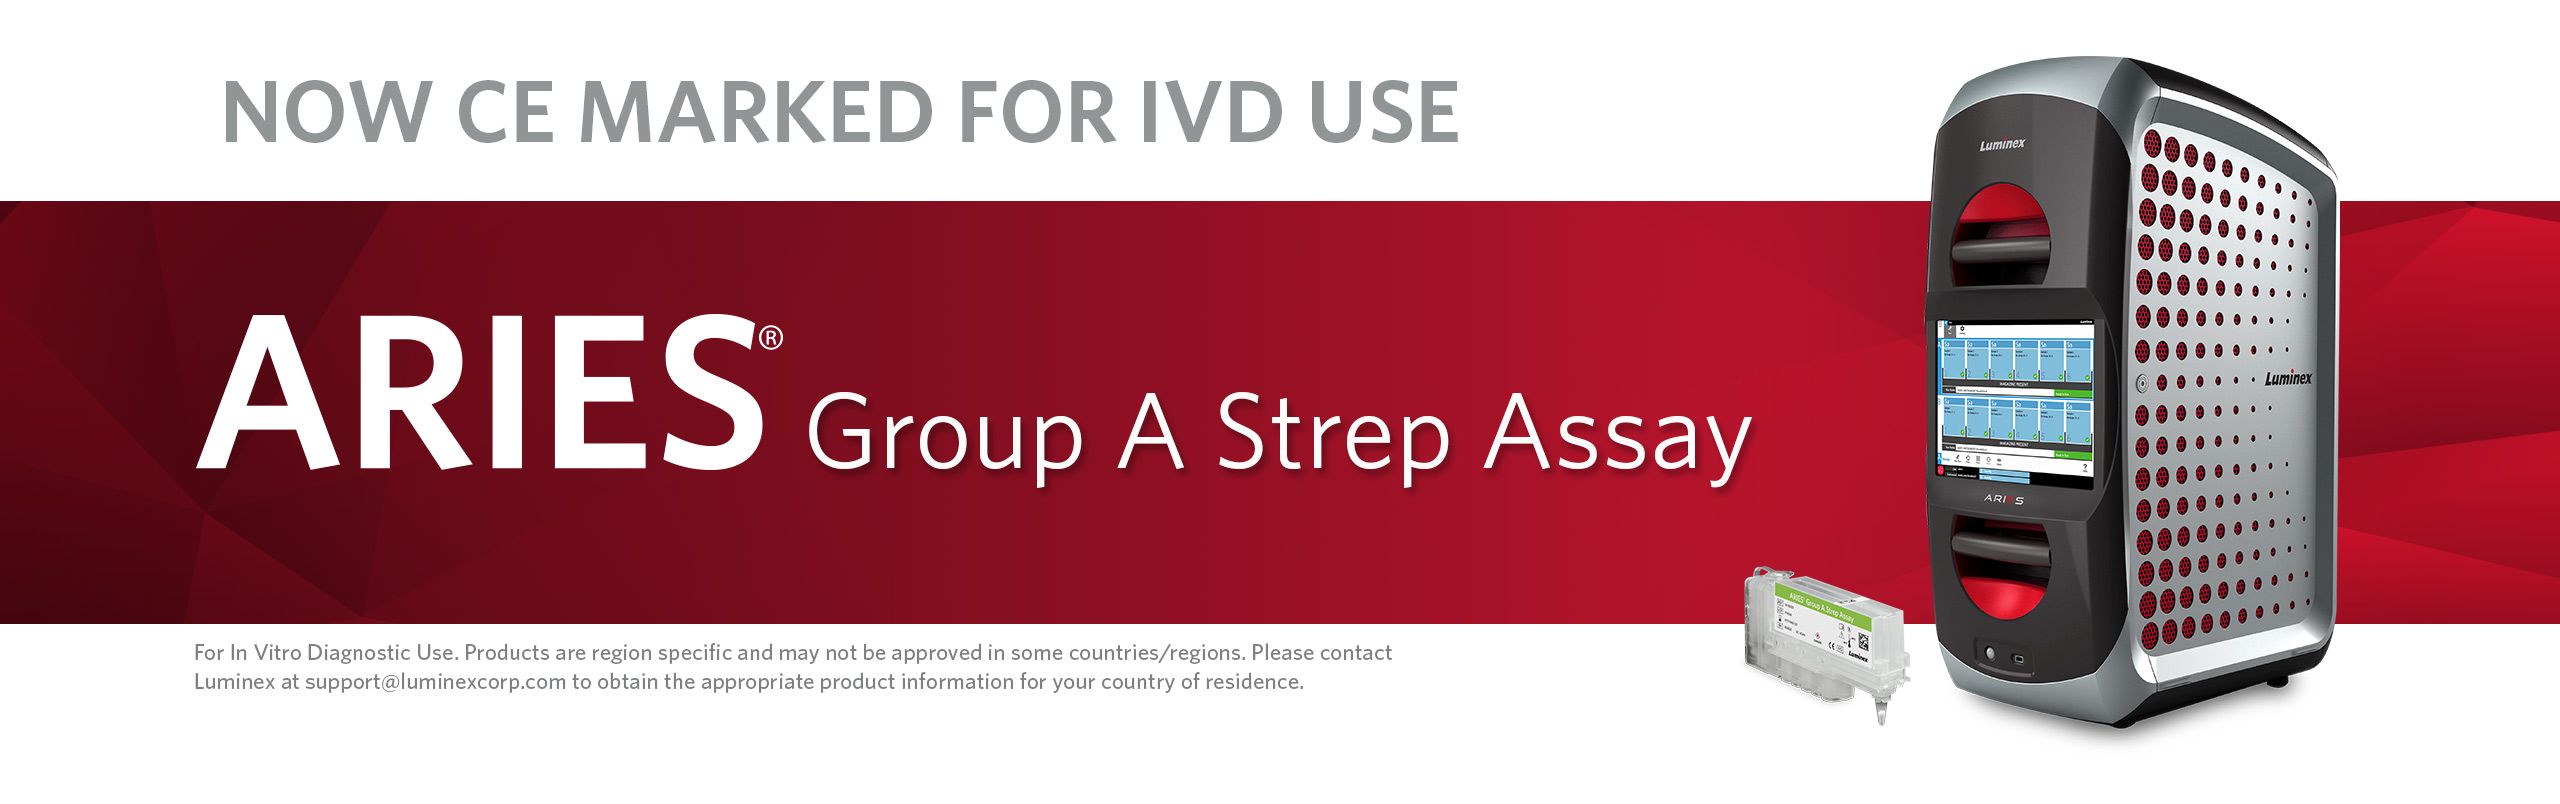 Now CE Marked For IVD Use: ARIES® Group A Strep Assay